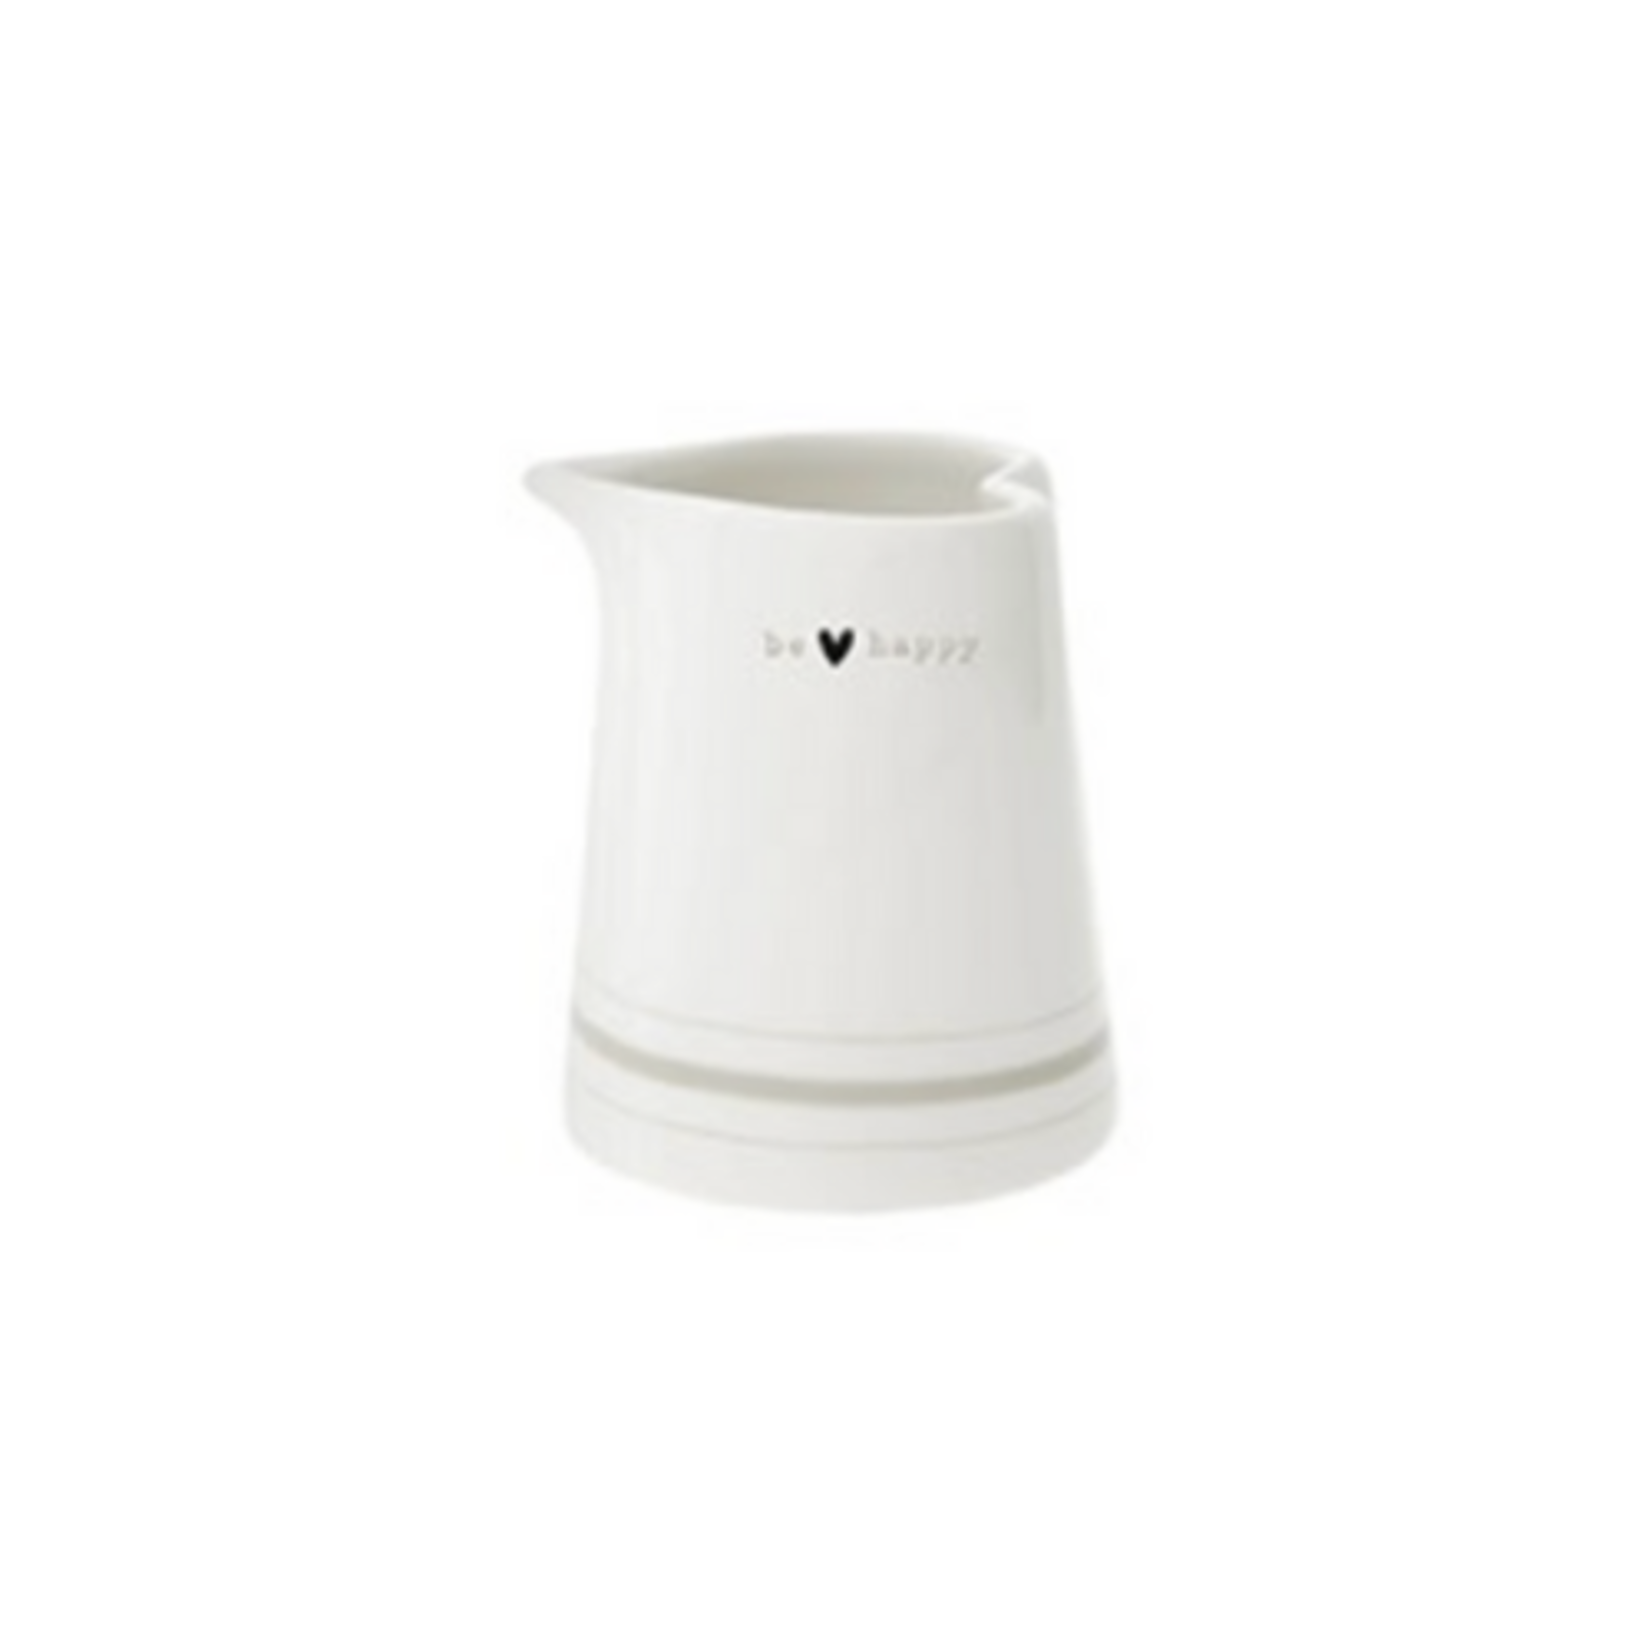 Bastion Collections Jug White Be Happy XS in Titane